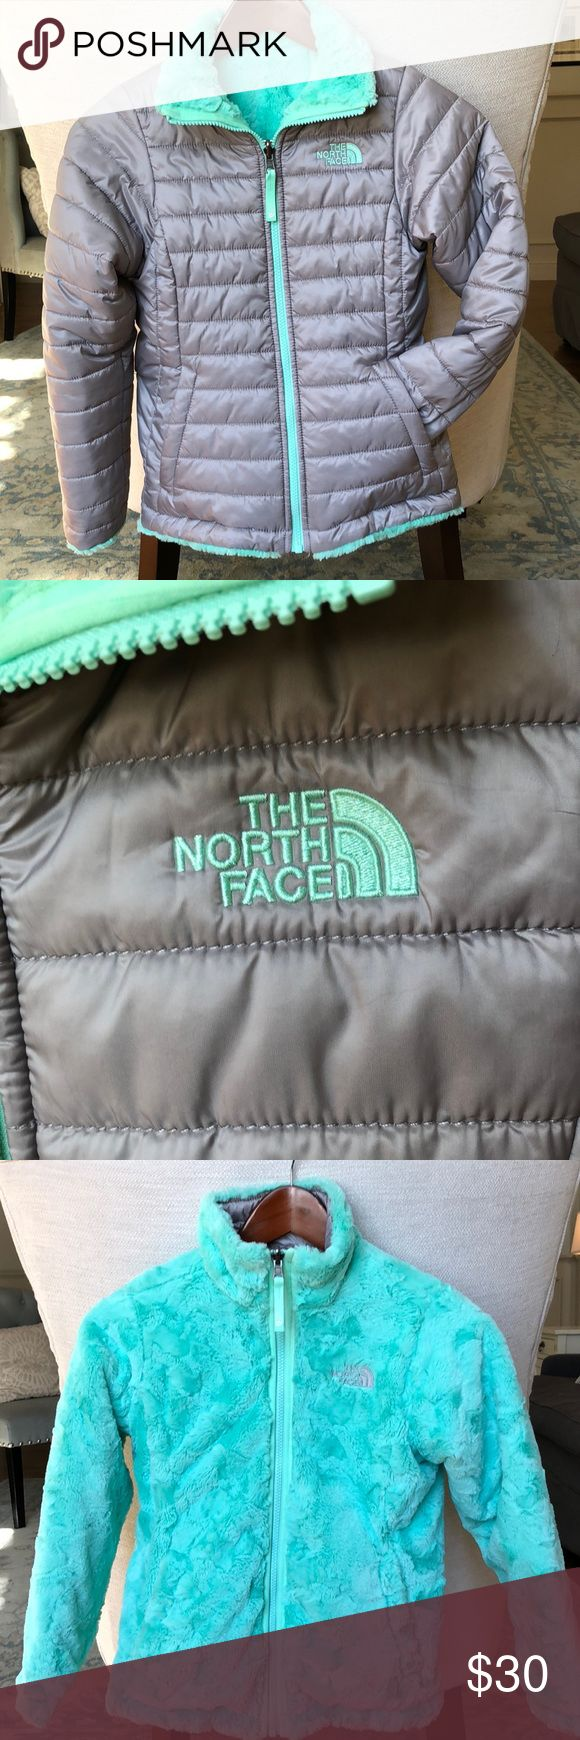 North Face Thermoball Jacket Girls (size 8-10) reversible North Face Thermoball Jacket.  Super snuggly, soft lining AND reversible with pockets on both sides. Silver gray exterior and sea foam polyester silken fleece lining. Purchased for a ski trip two winters ago and rarely worn since.  Excellent condition and comes from a non-smoking home. Perfect for the cold temps and North Face quality will last through many hand-me-downs. North Face Jackets & Coats Puffers